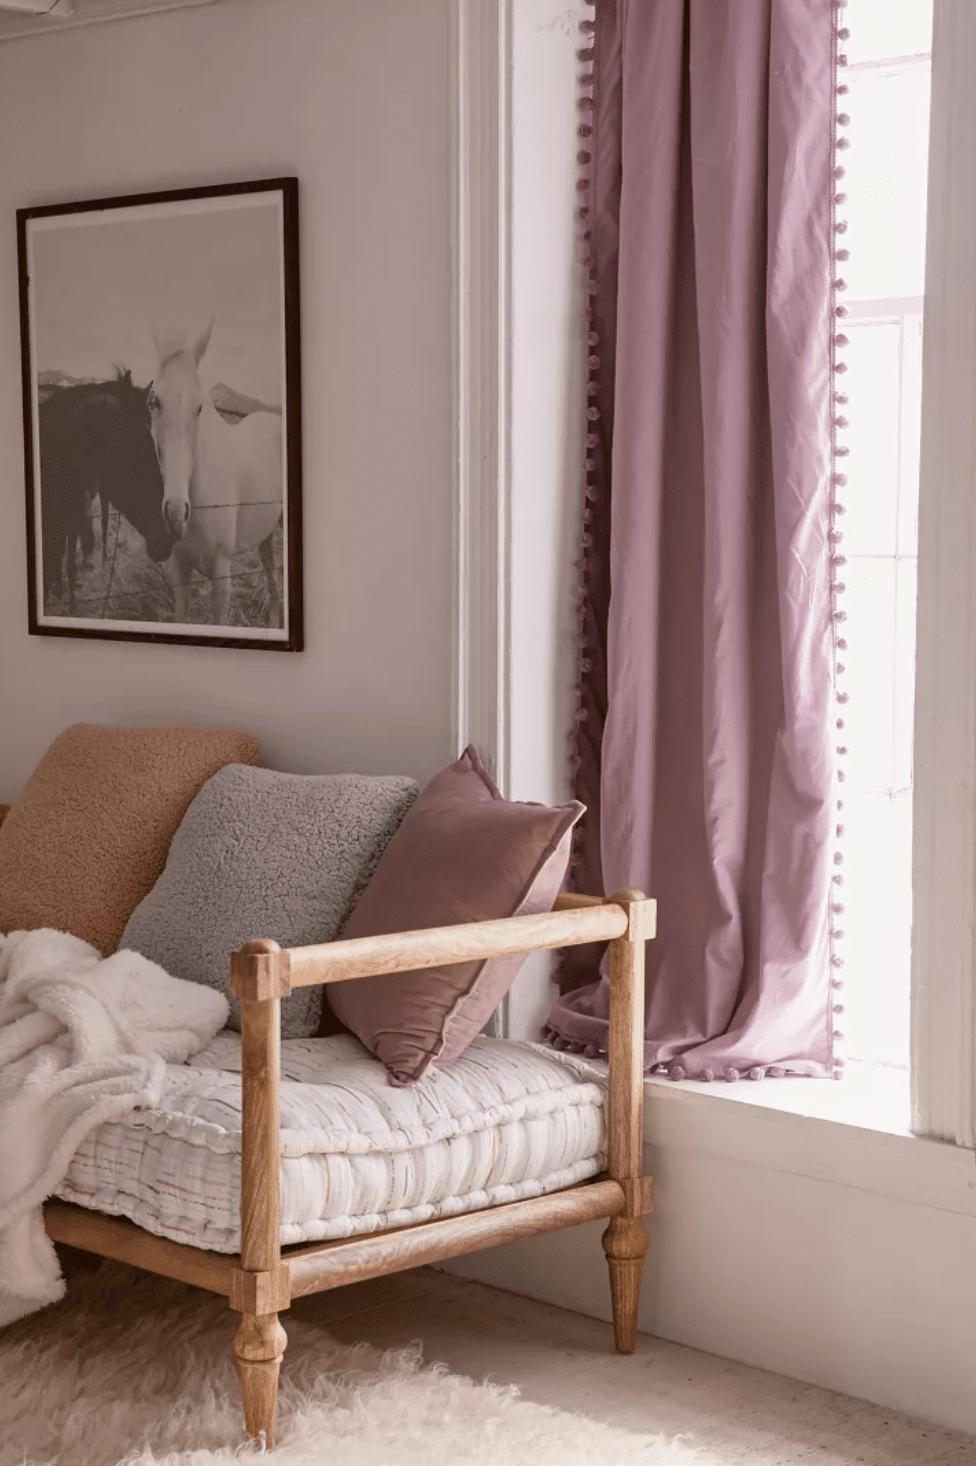 A lavender curtain lined with pom-poms, which is currently for sale at Urban Outfitters